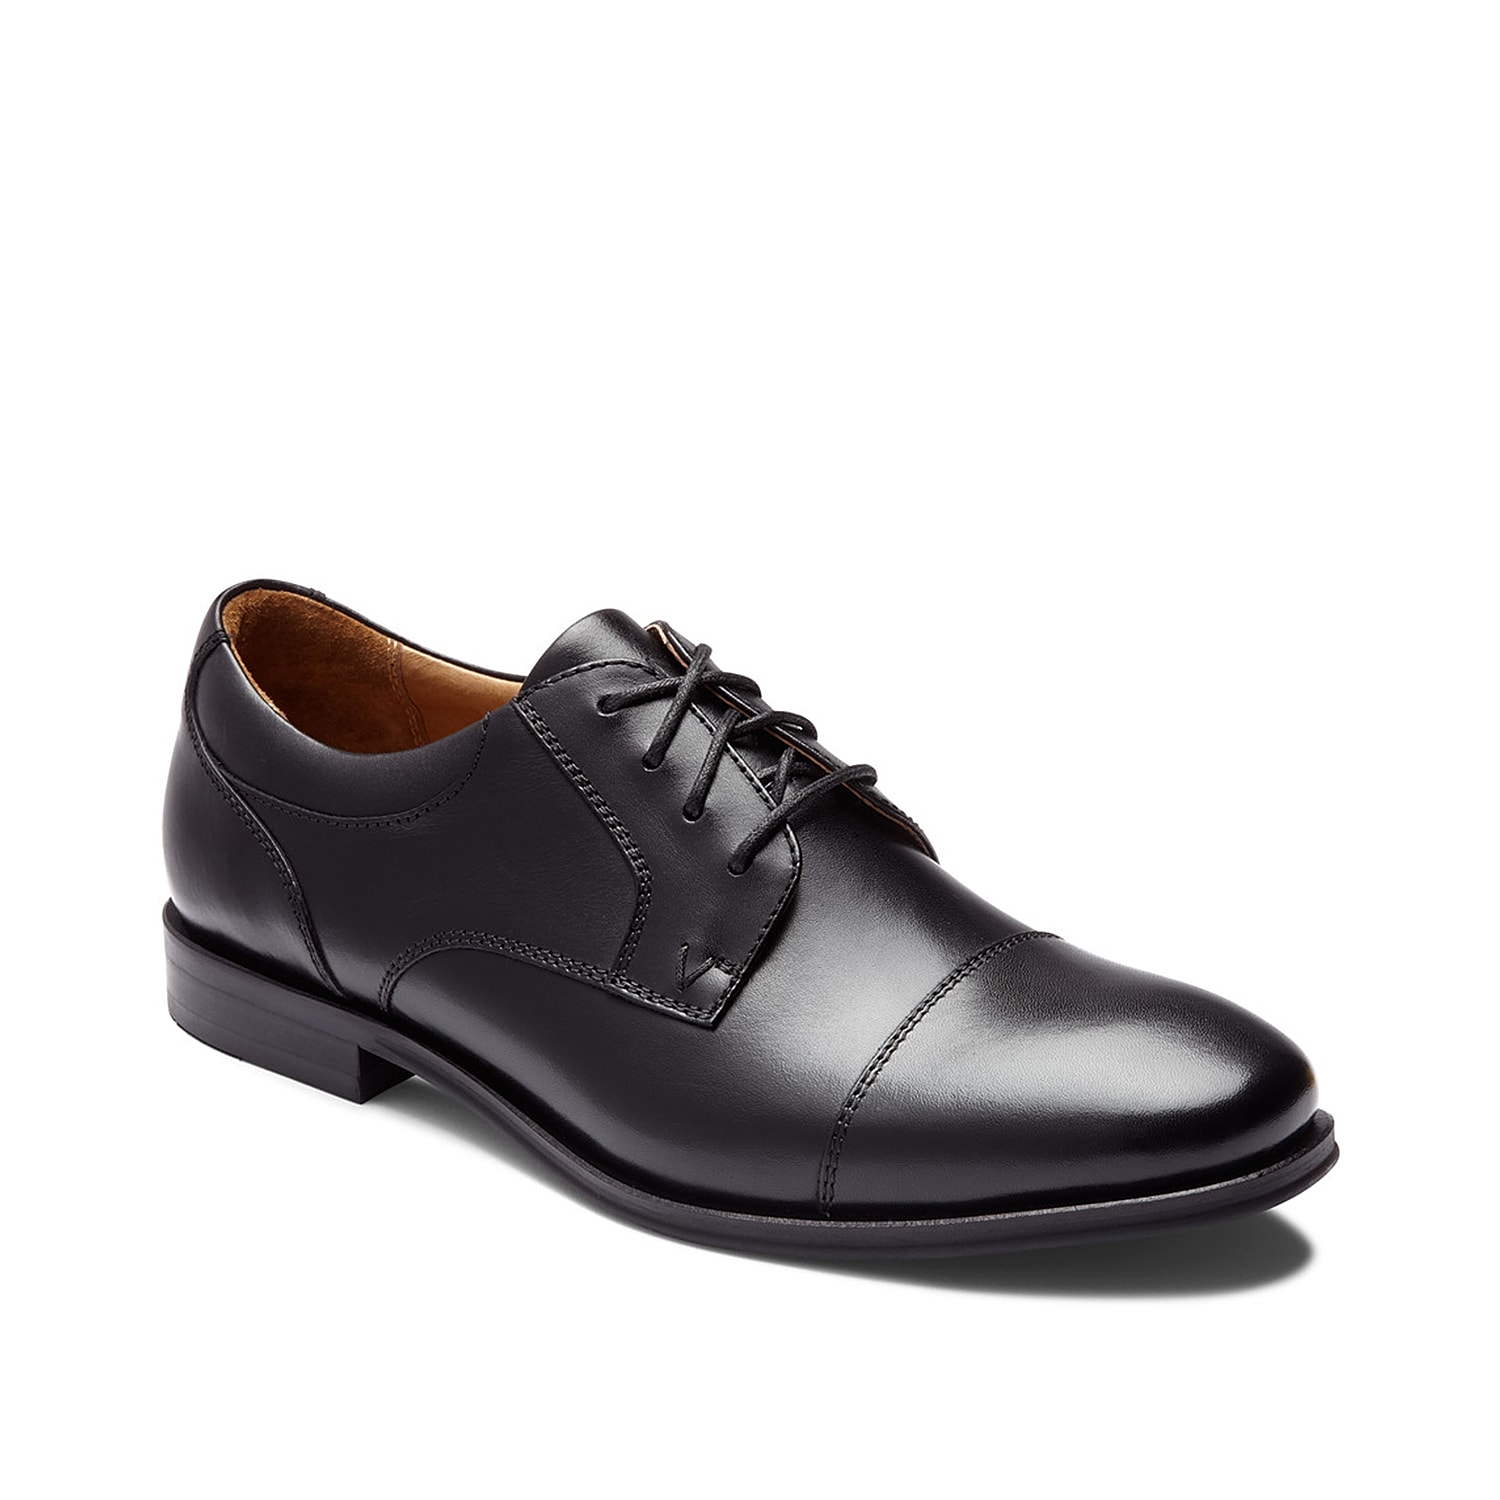 Classic style comes with all-day comfort in the Shane oxford from Vionic. Perfect for day to night wear, this leather lace-up features podiatrist-designed technology to support your feet with daylong comfort.